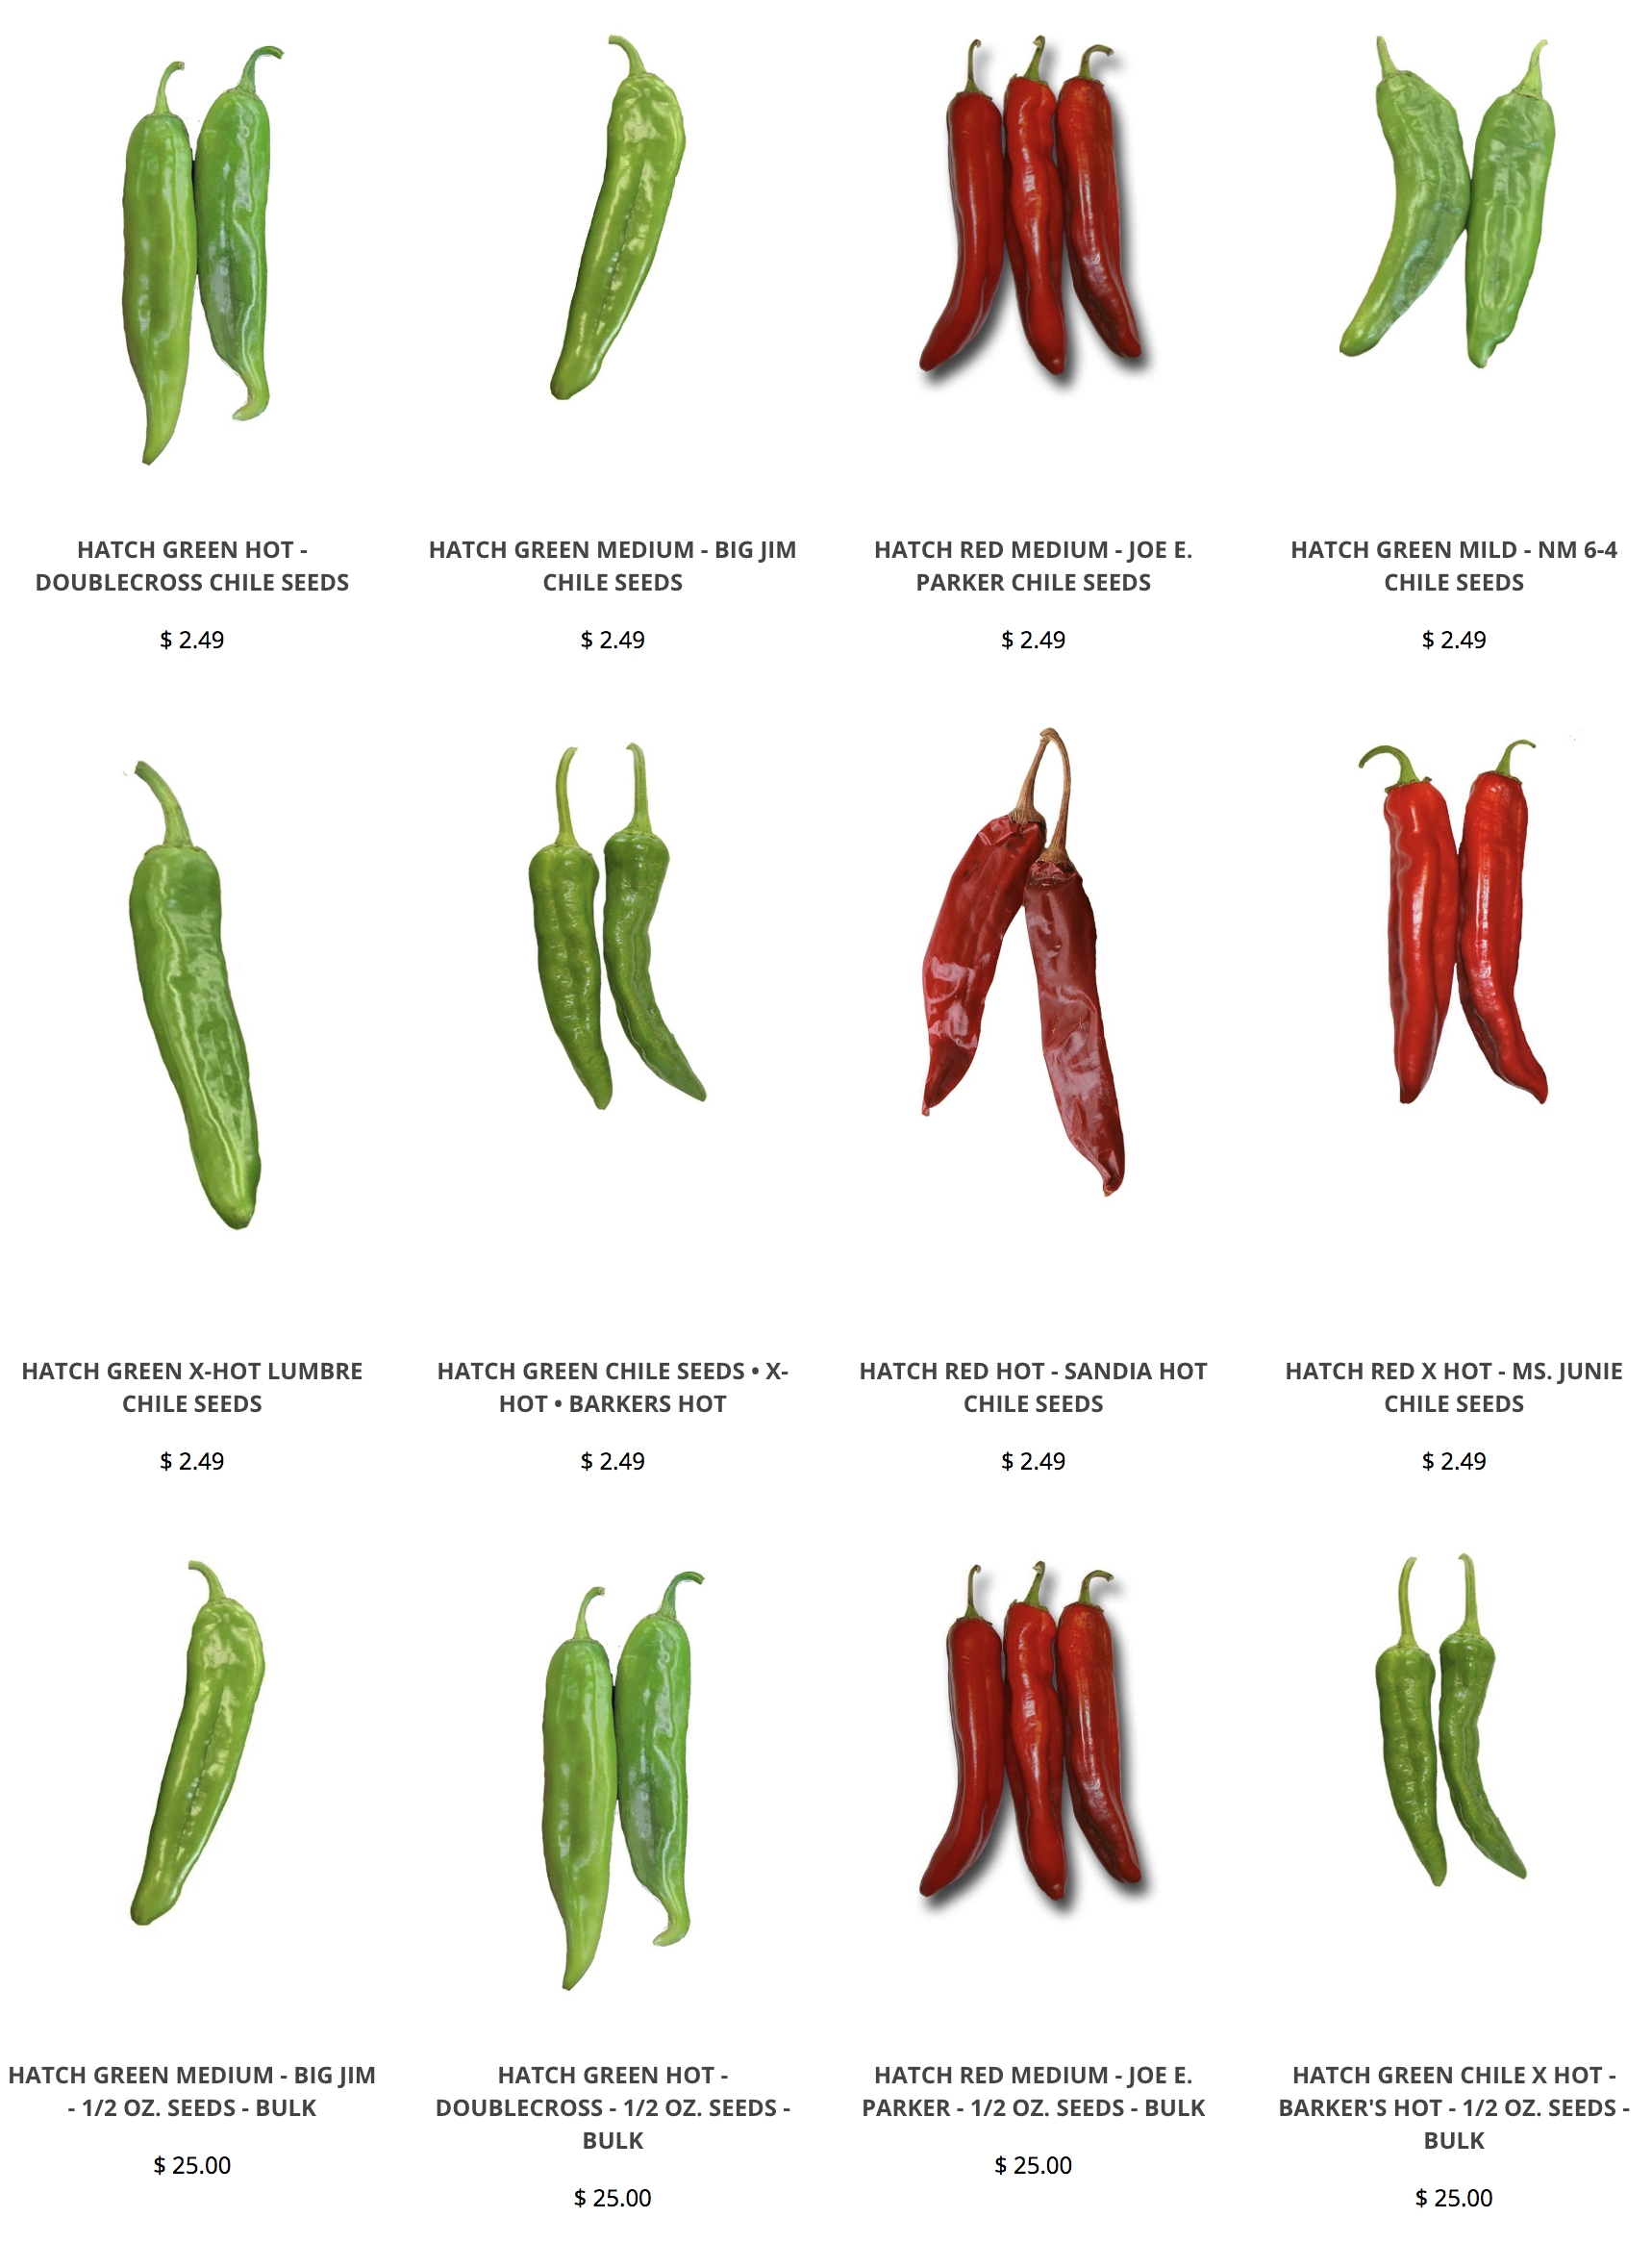 If You Want To Grow Your Own Hatch Chile Seeds Here We Have All